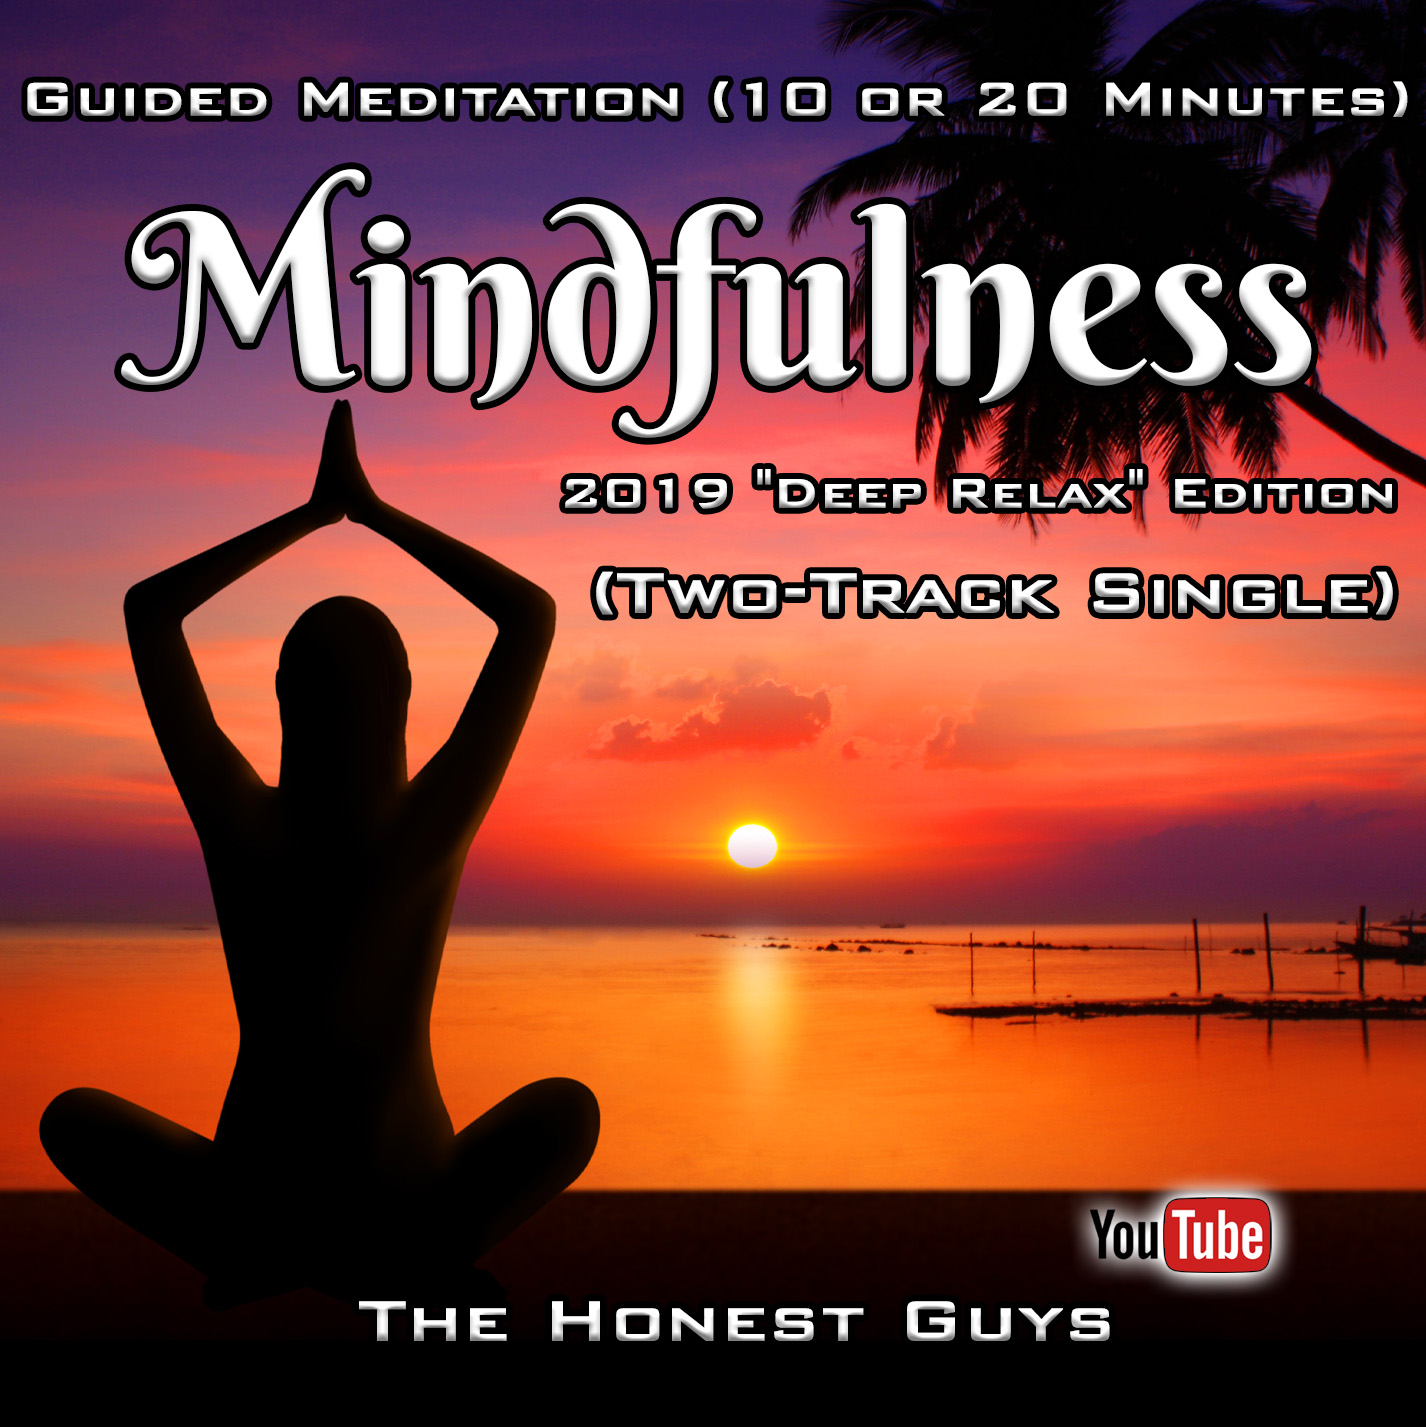 MP3 : Mindfulness - Guided Meditation (10 or 20 Minutes) 2019